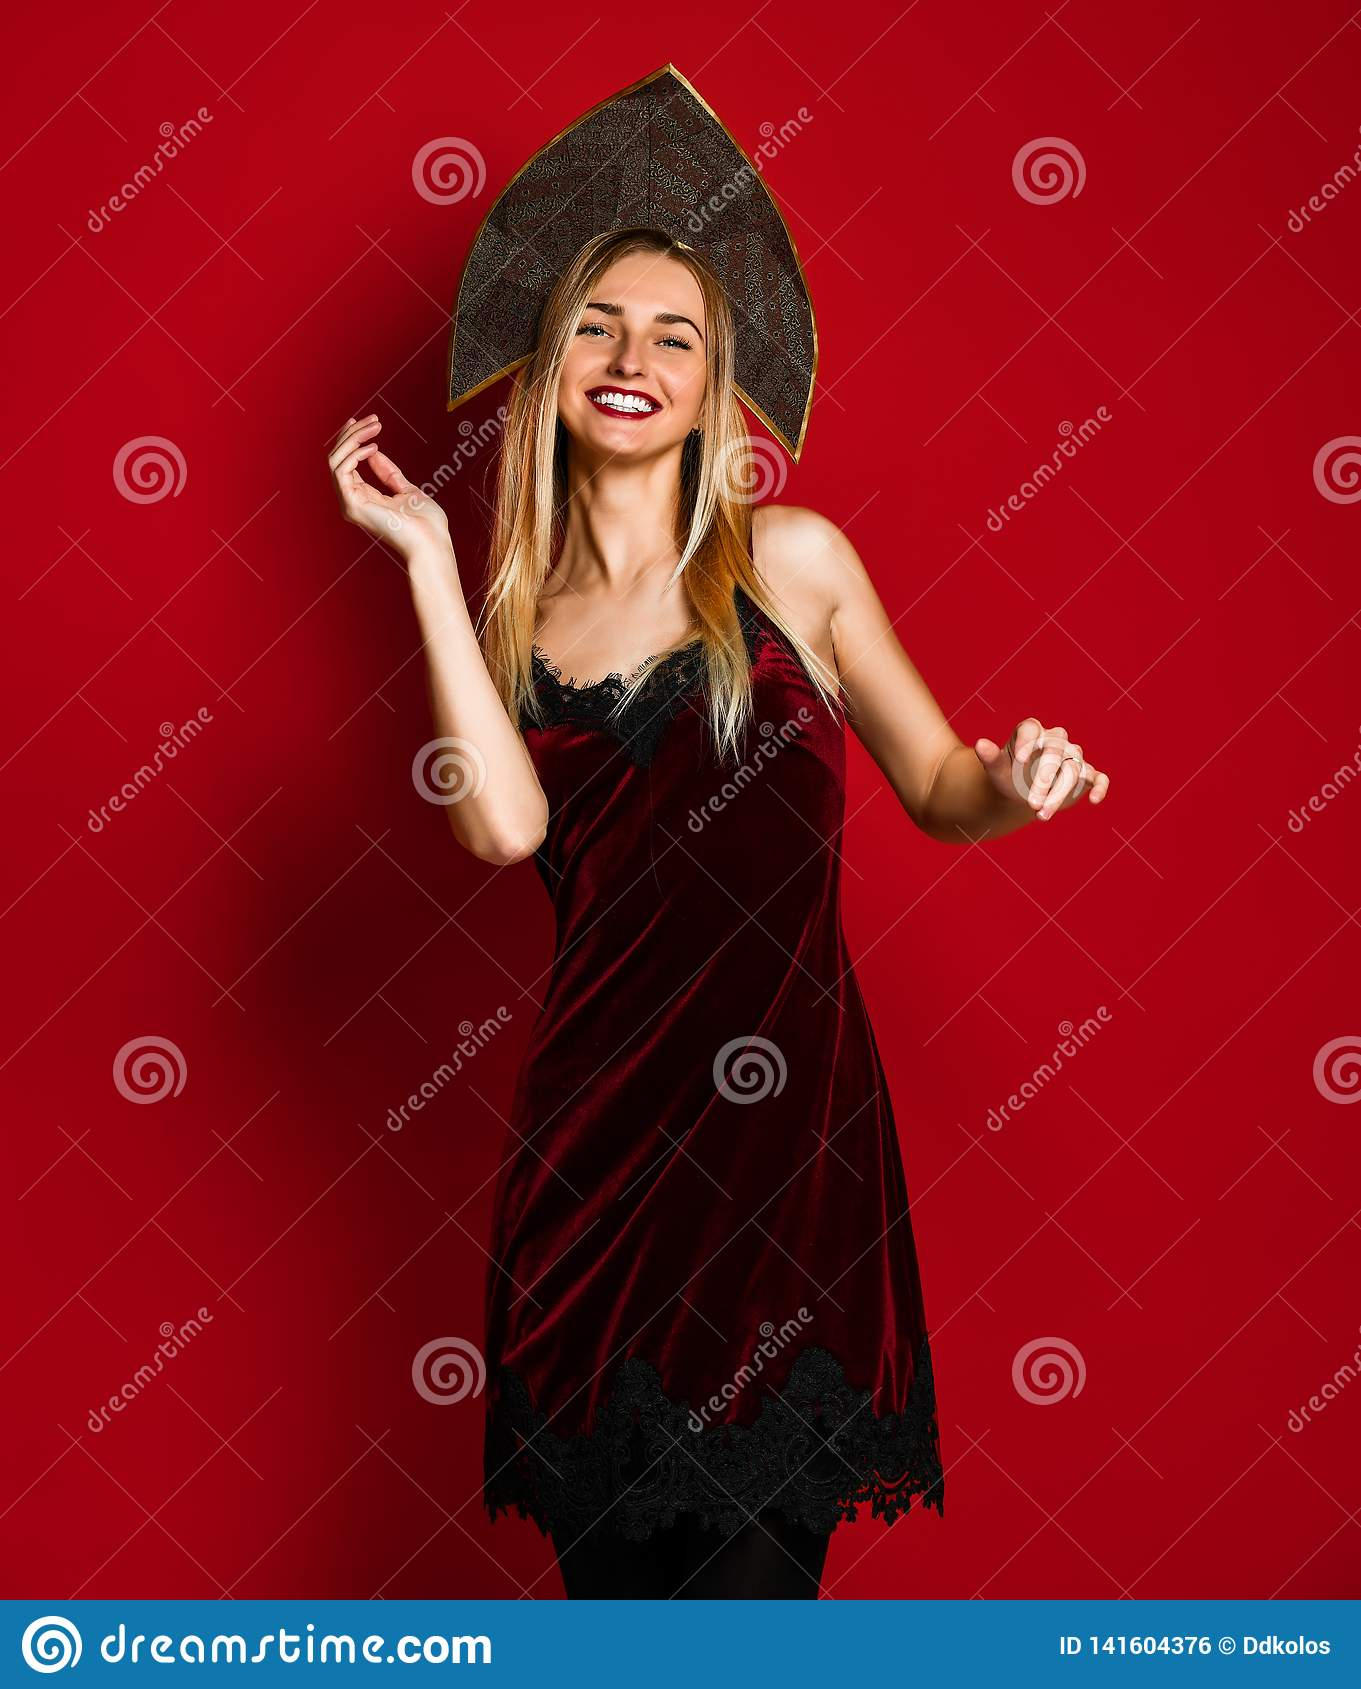 Glad woman in red dress happy dancing and relaxing , celebrating . Indoor photo of pretty lady in kokoshnik hat having fun